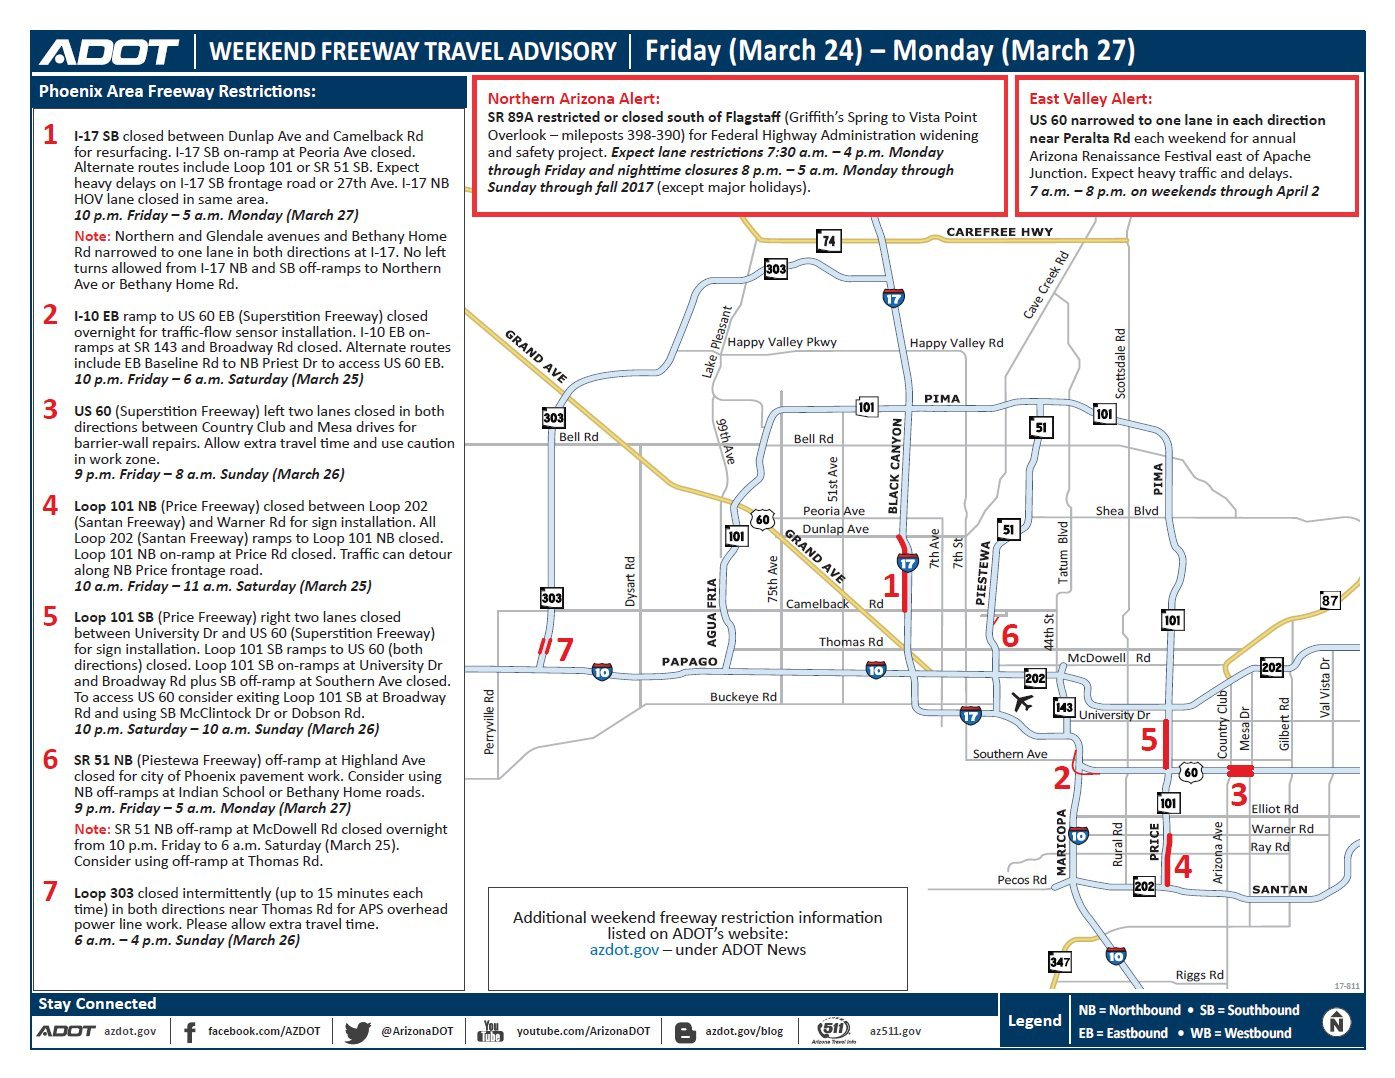 ADOT Weekend Freeway Travel Advisory (March 24-27) - Arizona\'s Family